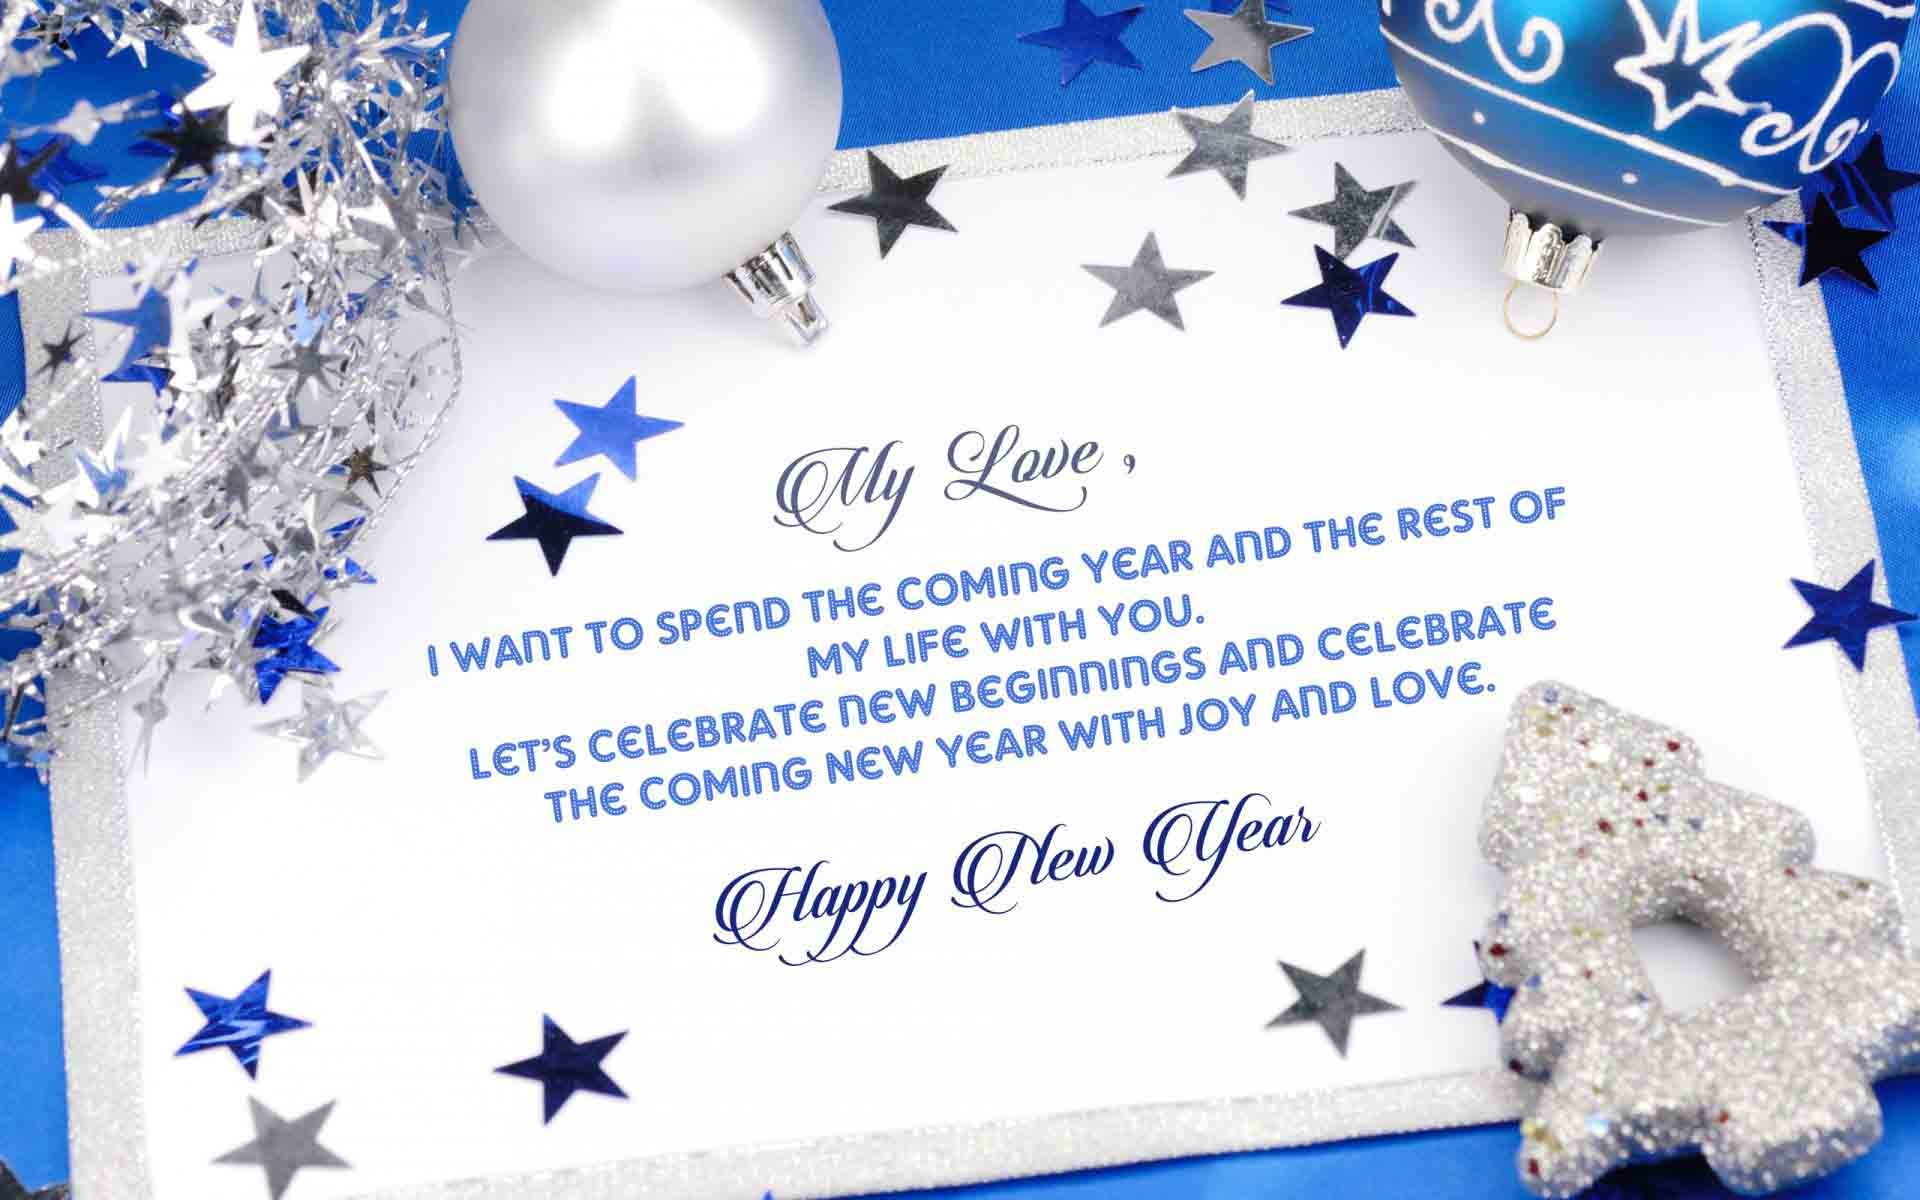 1920x1440 happy new year 2016 romantic shayari sms msgs or greetings most romantic new year shayari